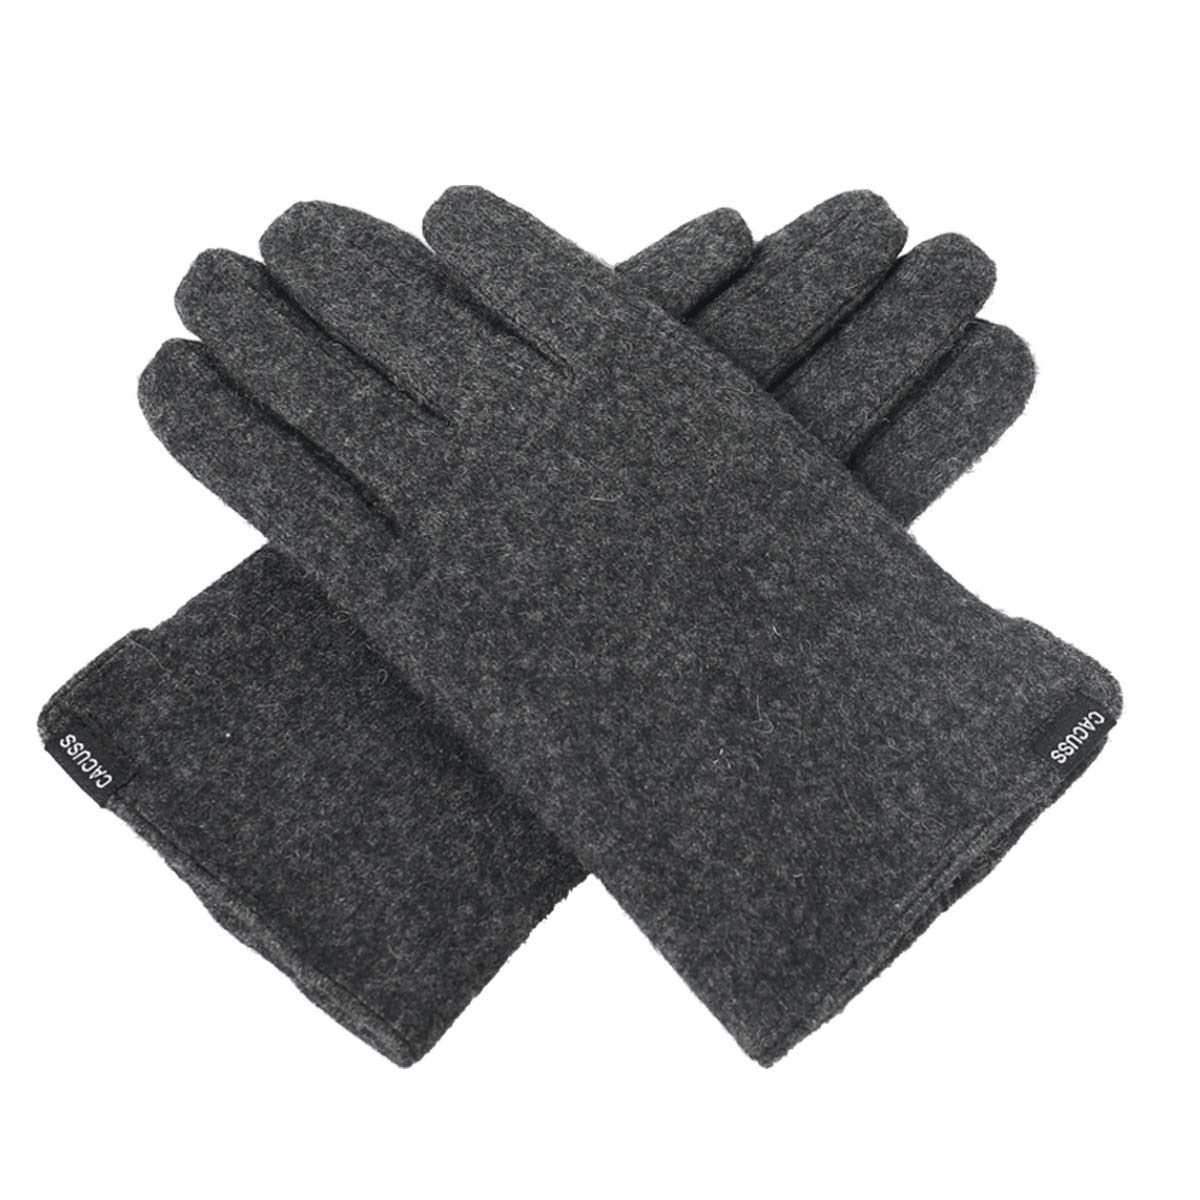 CACUSS Gloves Women Autumn and Winter Knit Gloves for Women Warm Touch Screen Gloves Wear-resistant Cycling Travel Windproof Finger Gloves Ladies (Dark gray)